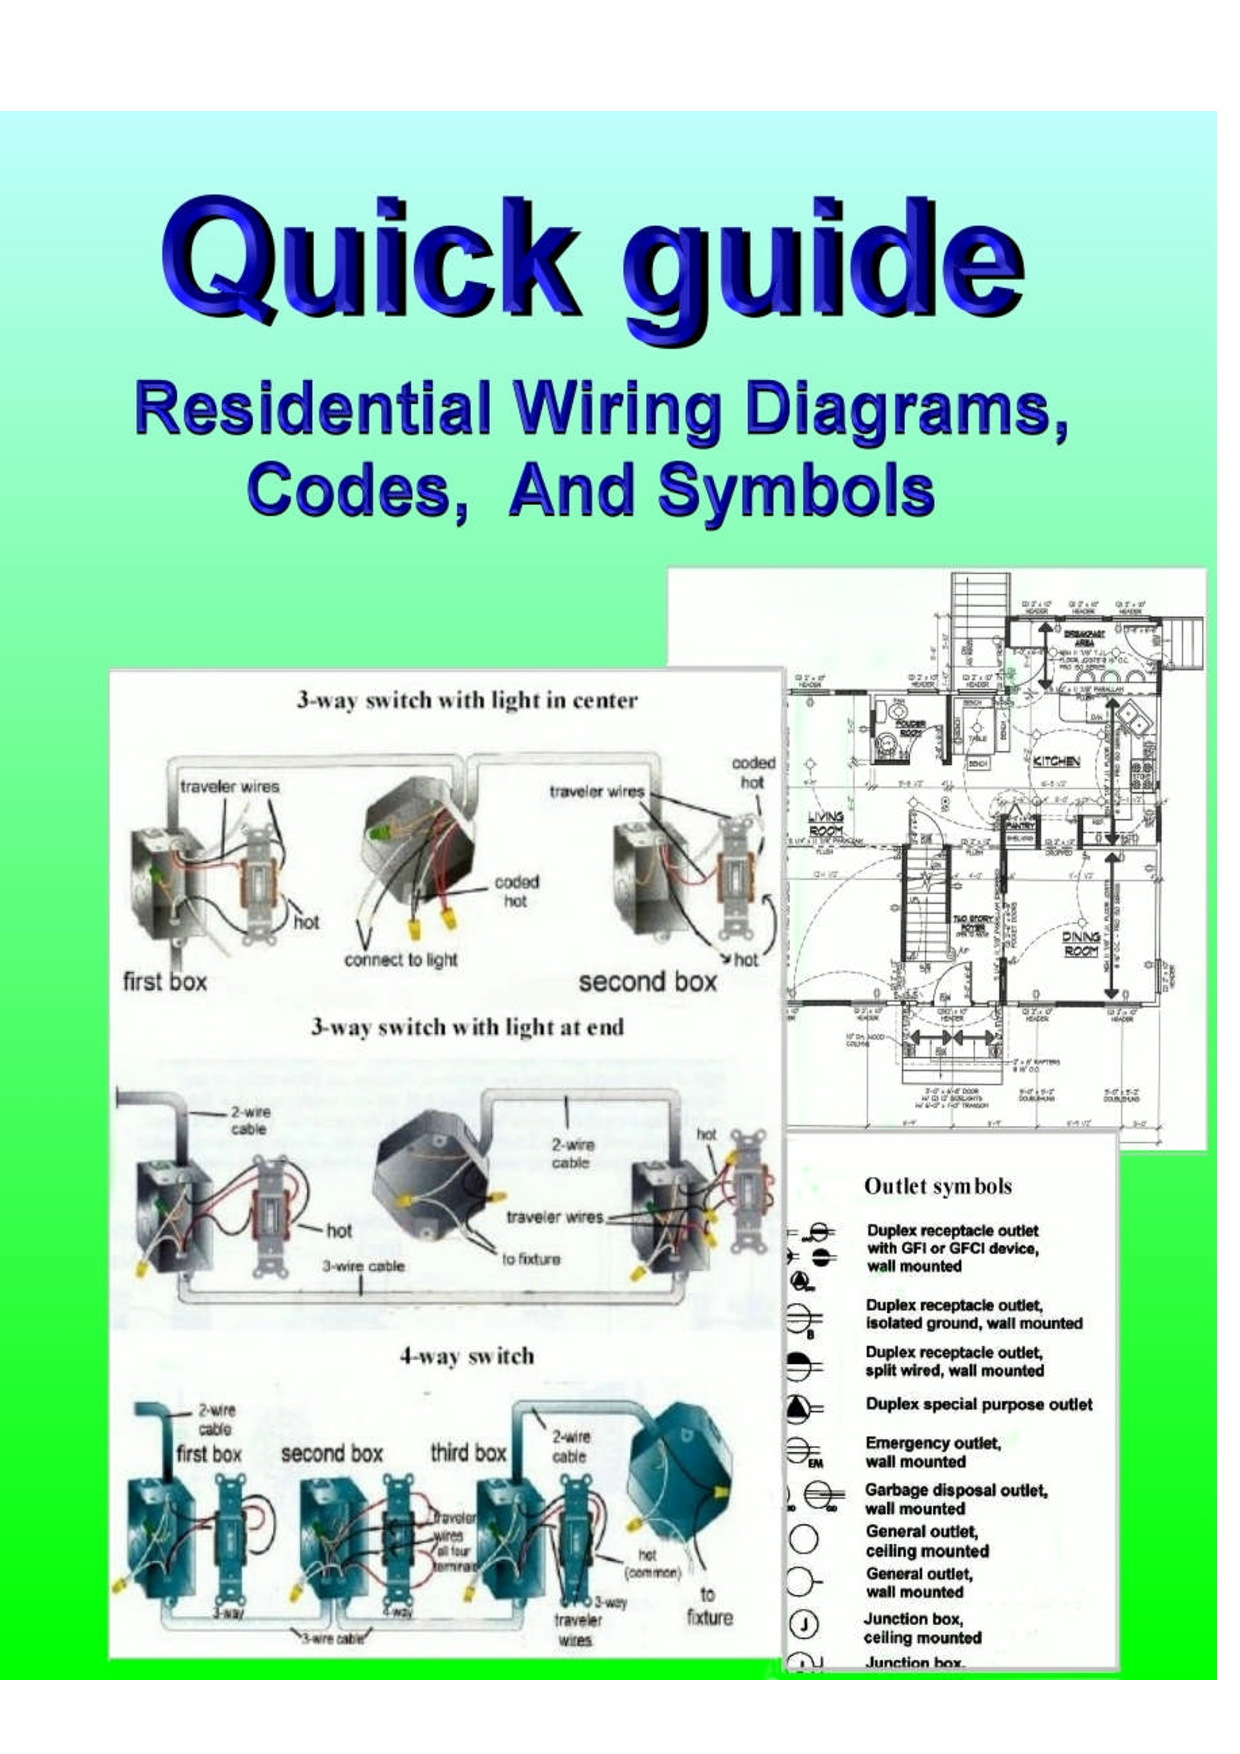 A step by step home wiring guide with diagrams, symbols, and electrical  codes.